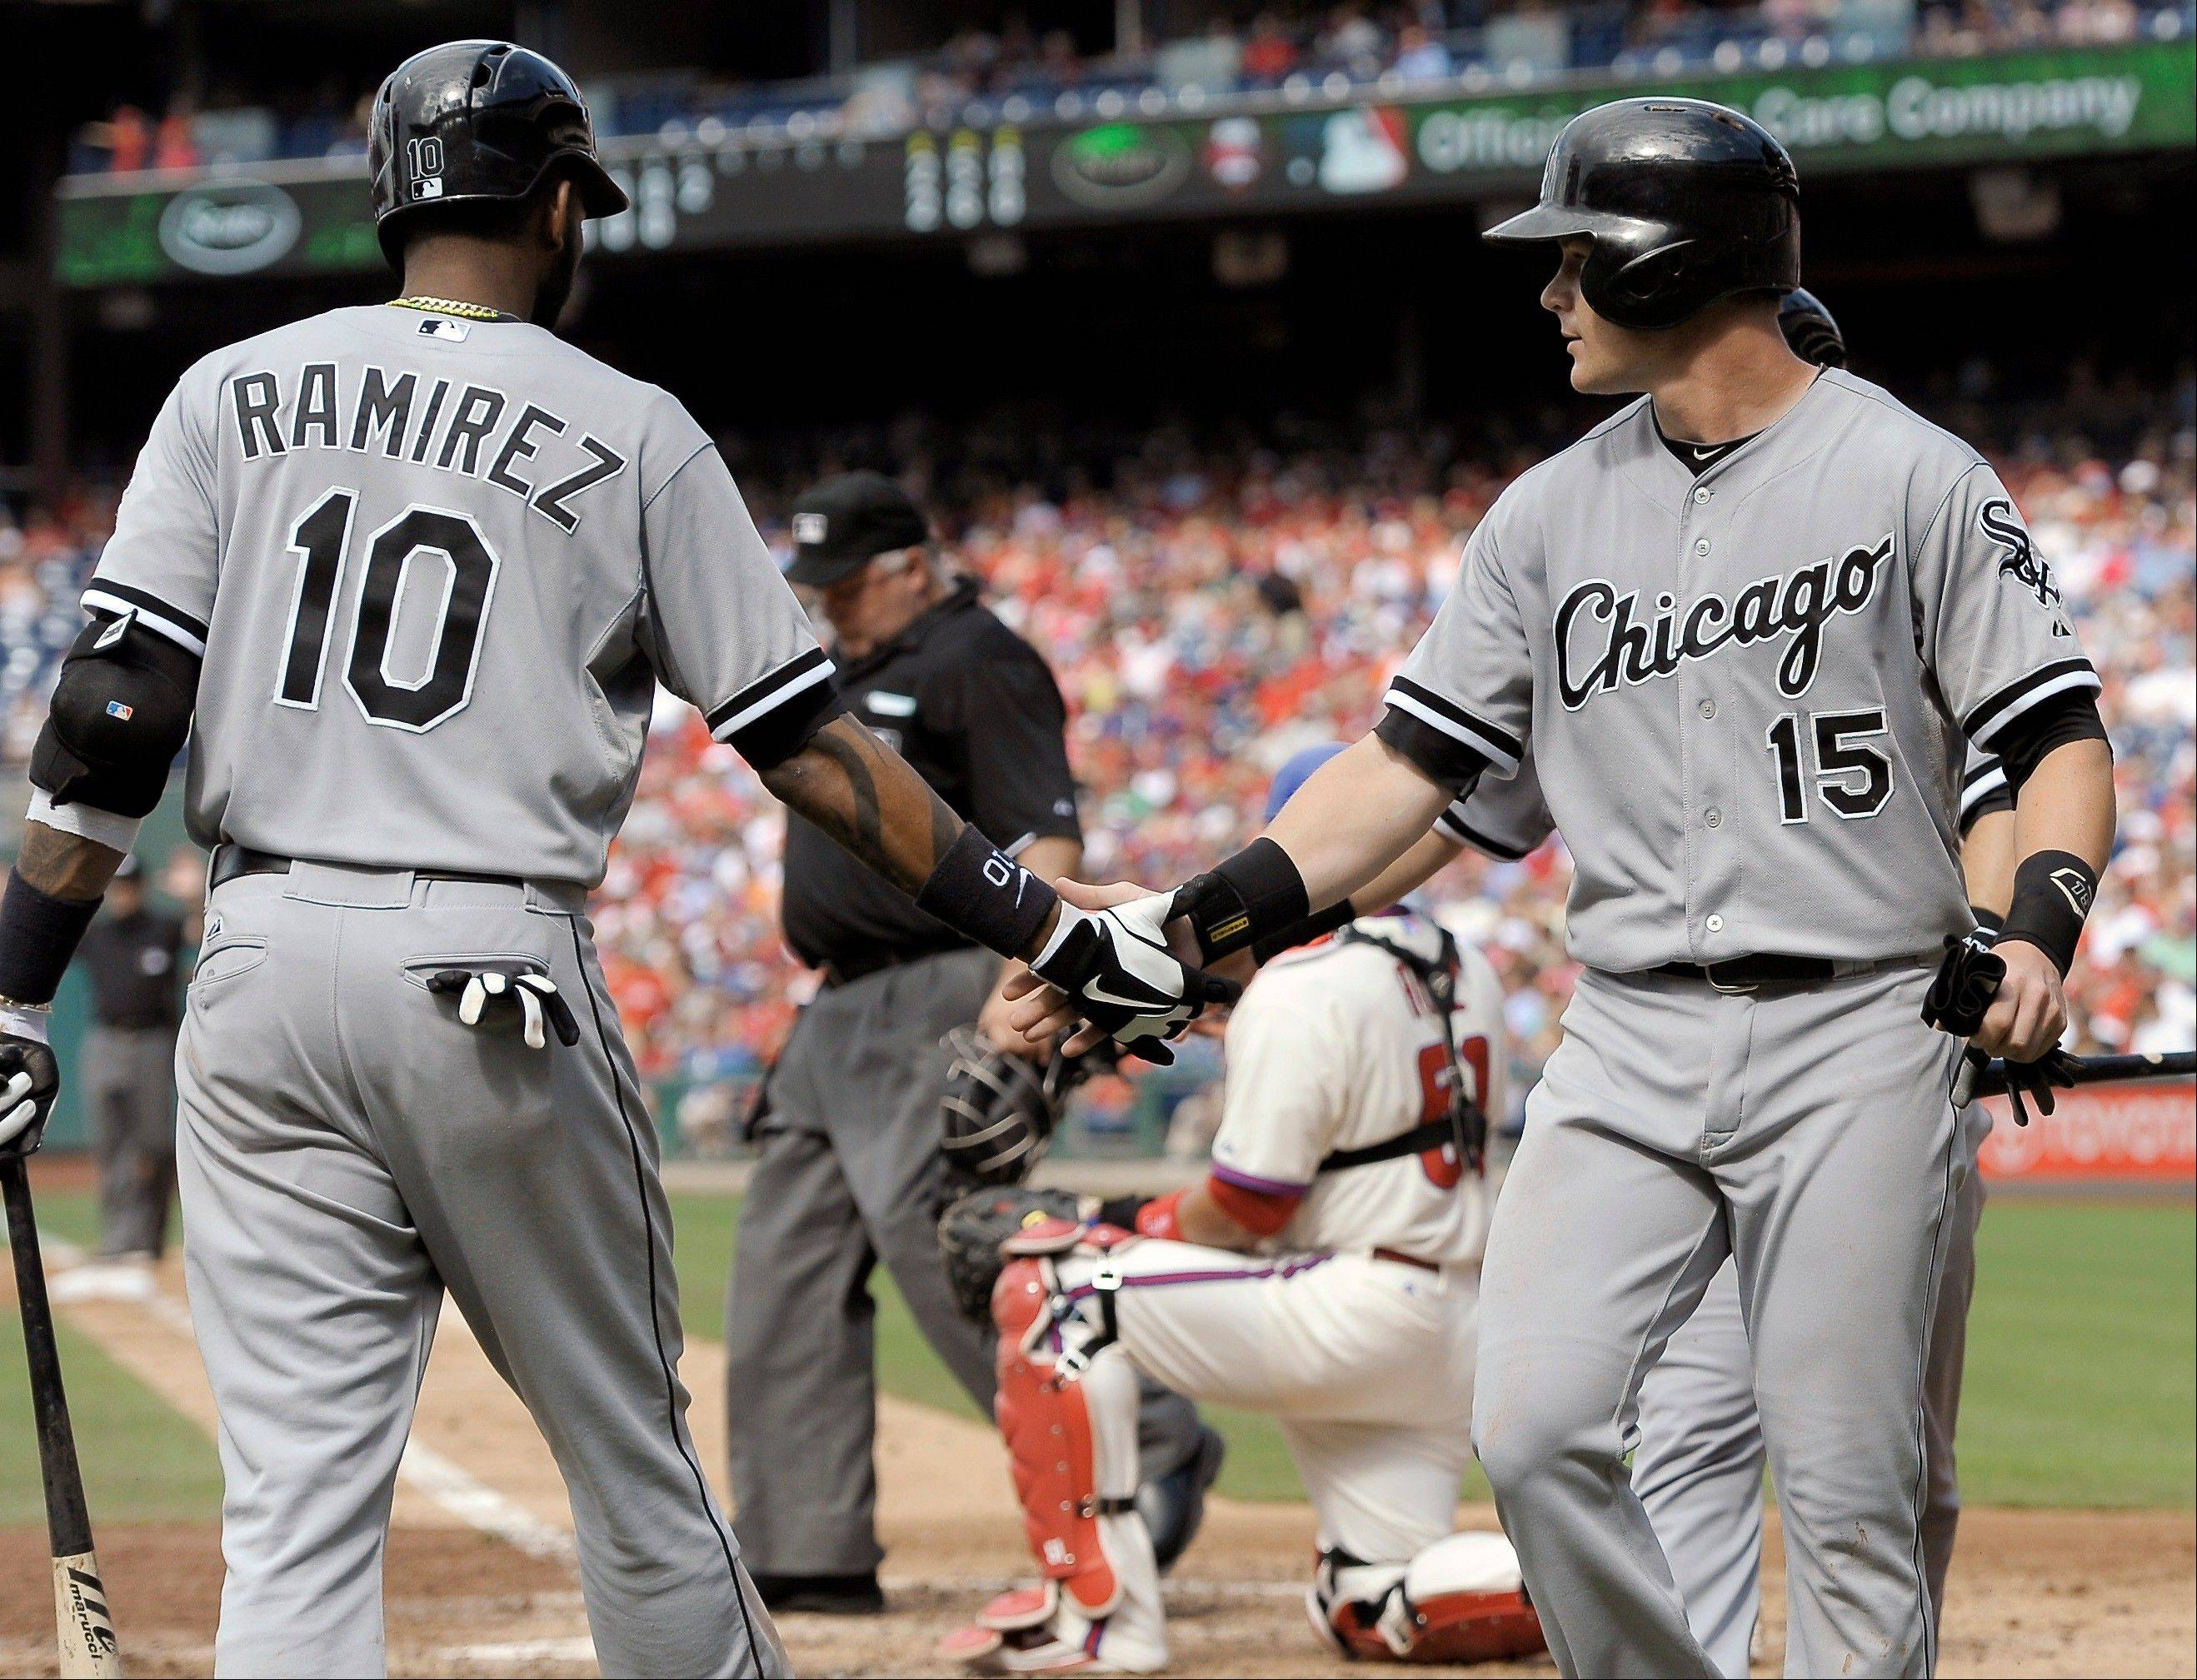 Chicago White Sox's Gordon Beckham (15) is greeted by Alexei Ramirez after scoring on an Alejandro De Aza double in the fifth inning during game one of a baseball doubleheader against the Philadelphia Phillies on Saturday, July 13, 2013, in Philadelphia.